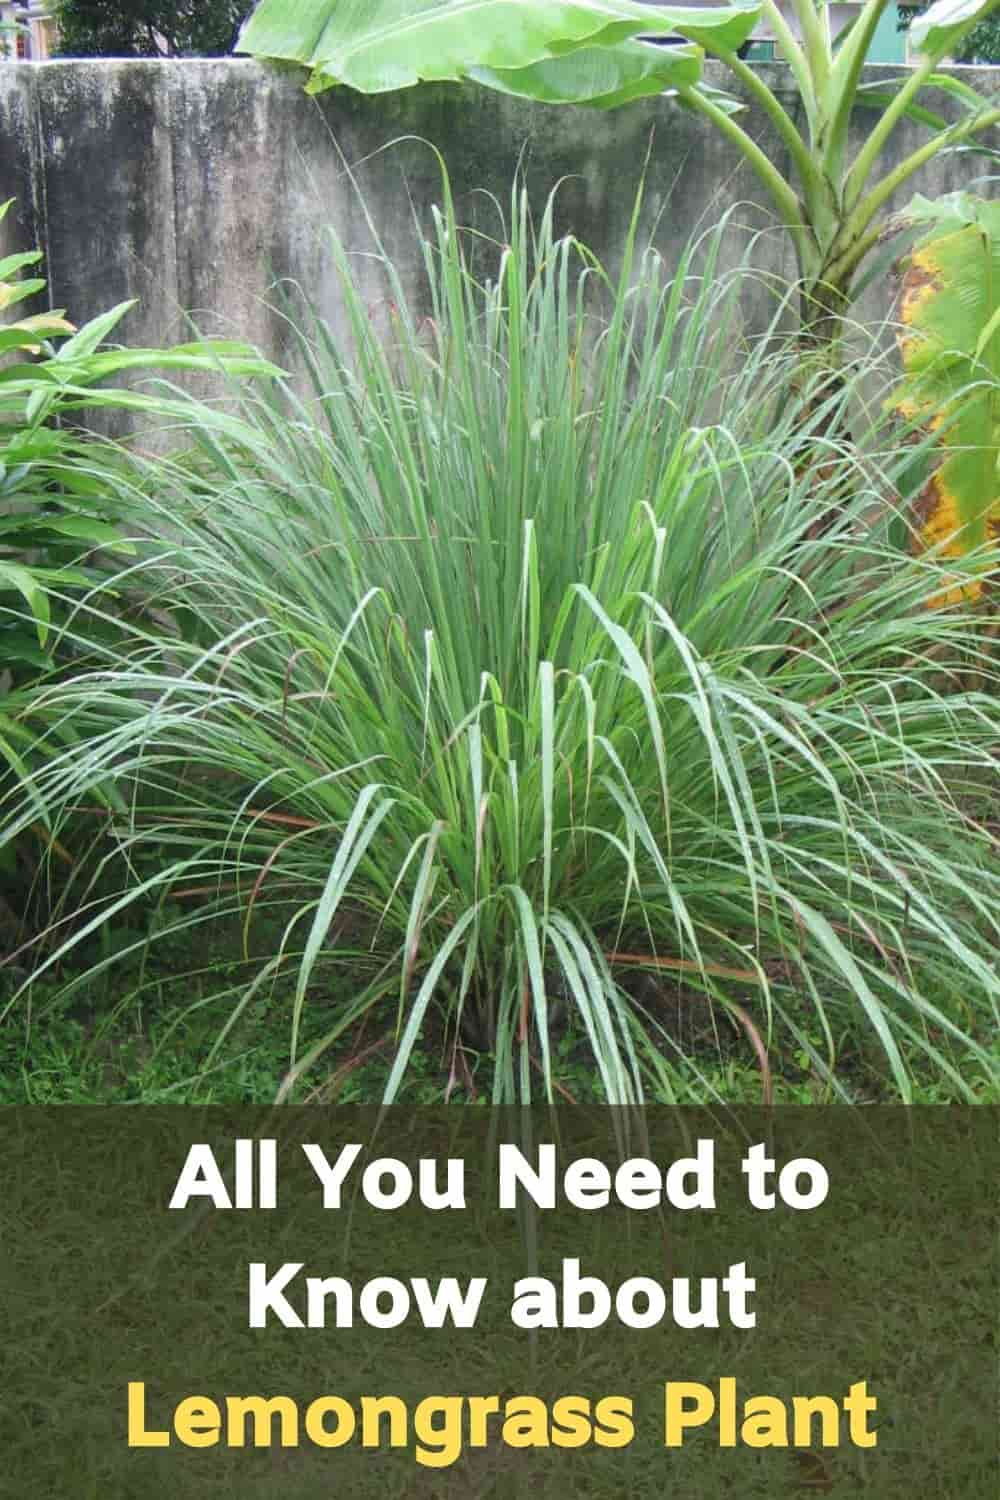 All You Need to Know about Lemongrass Plant